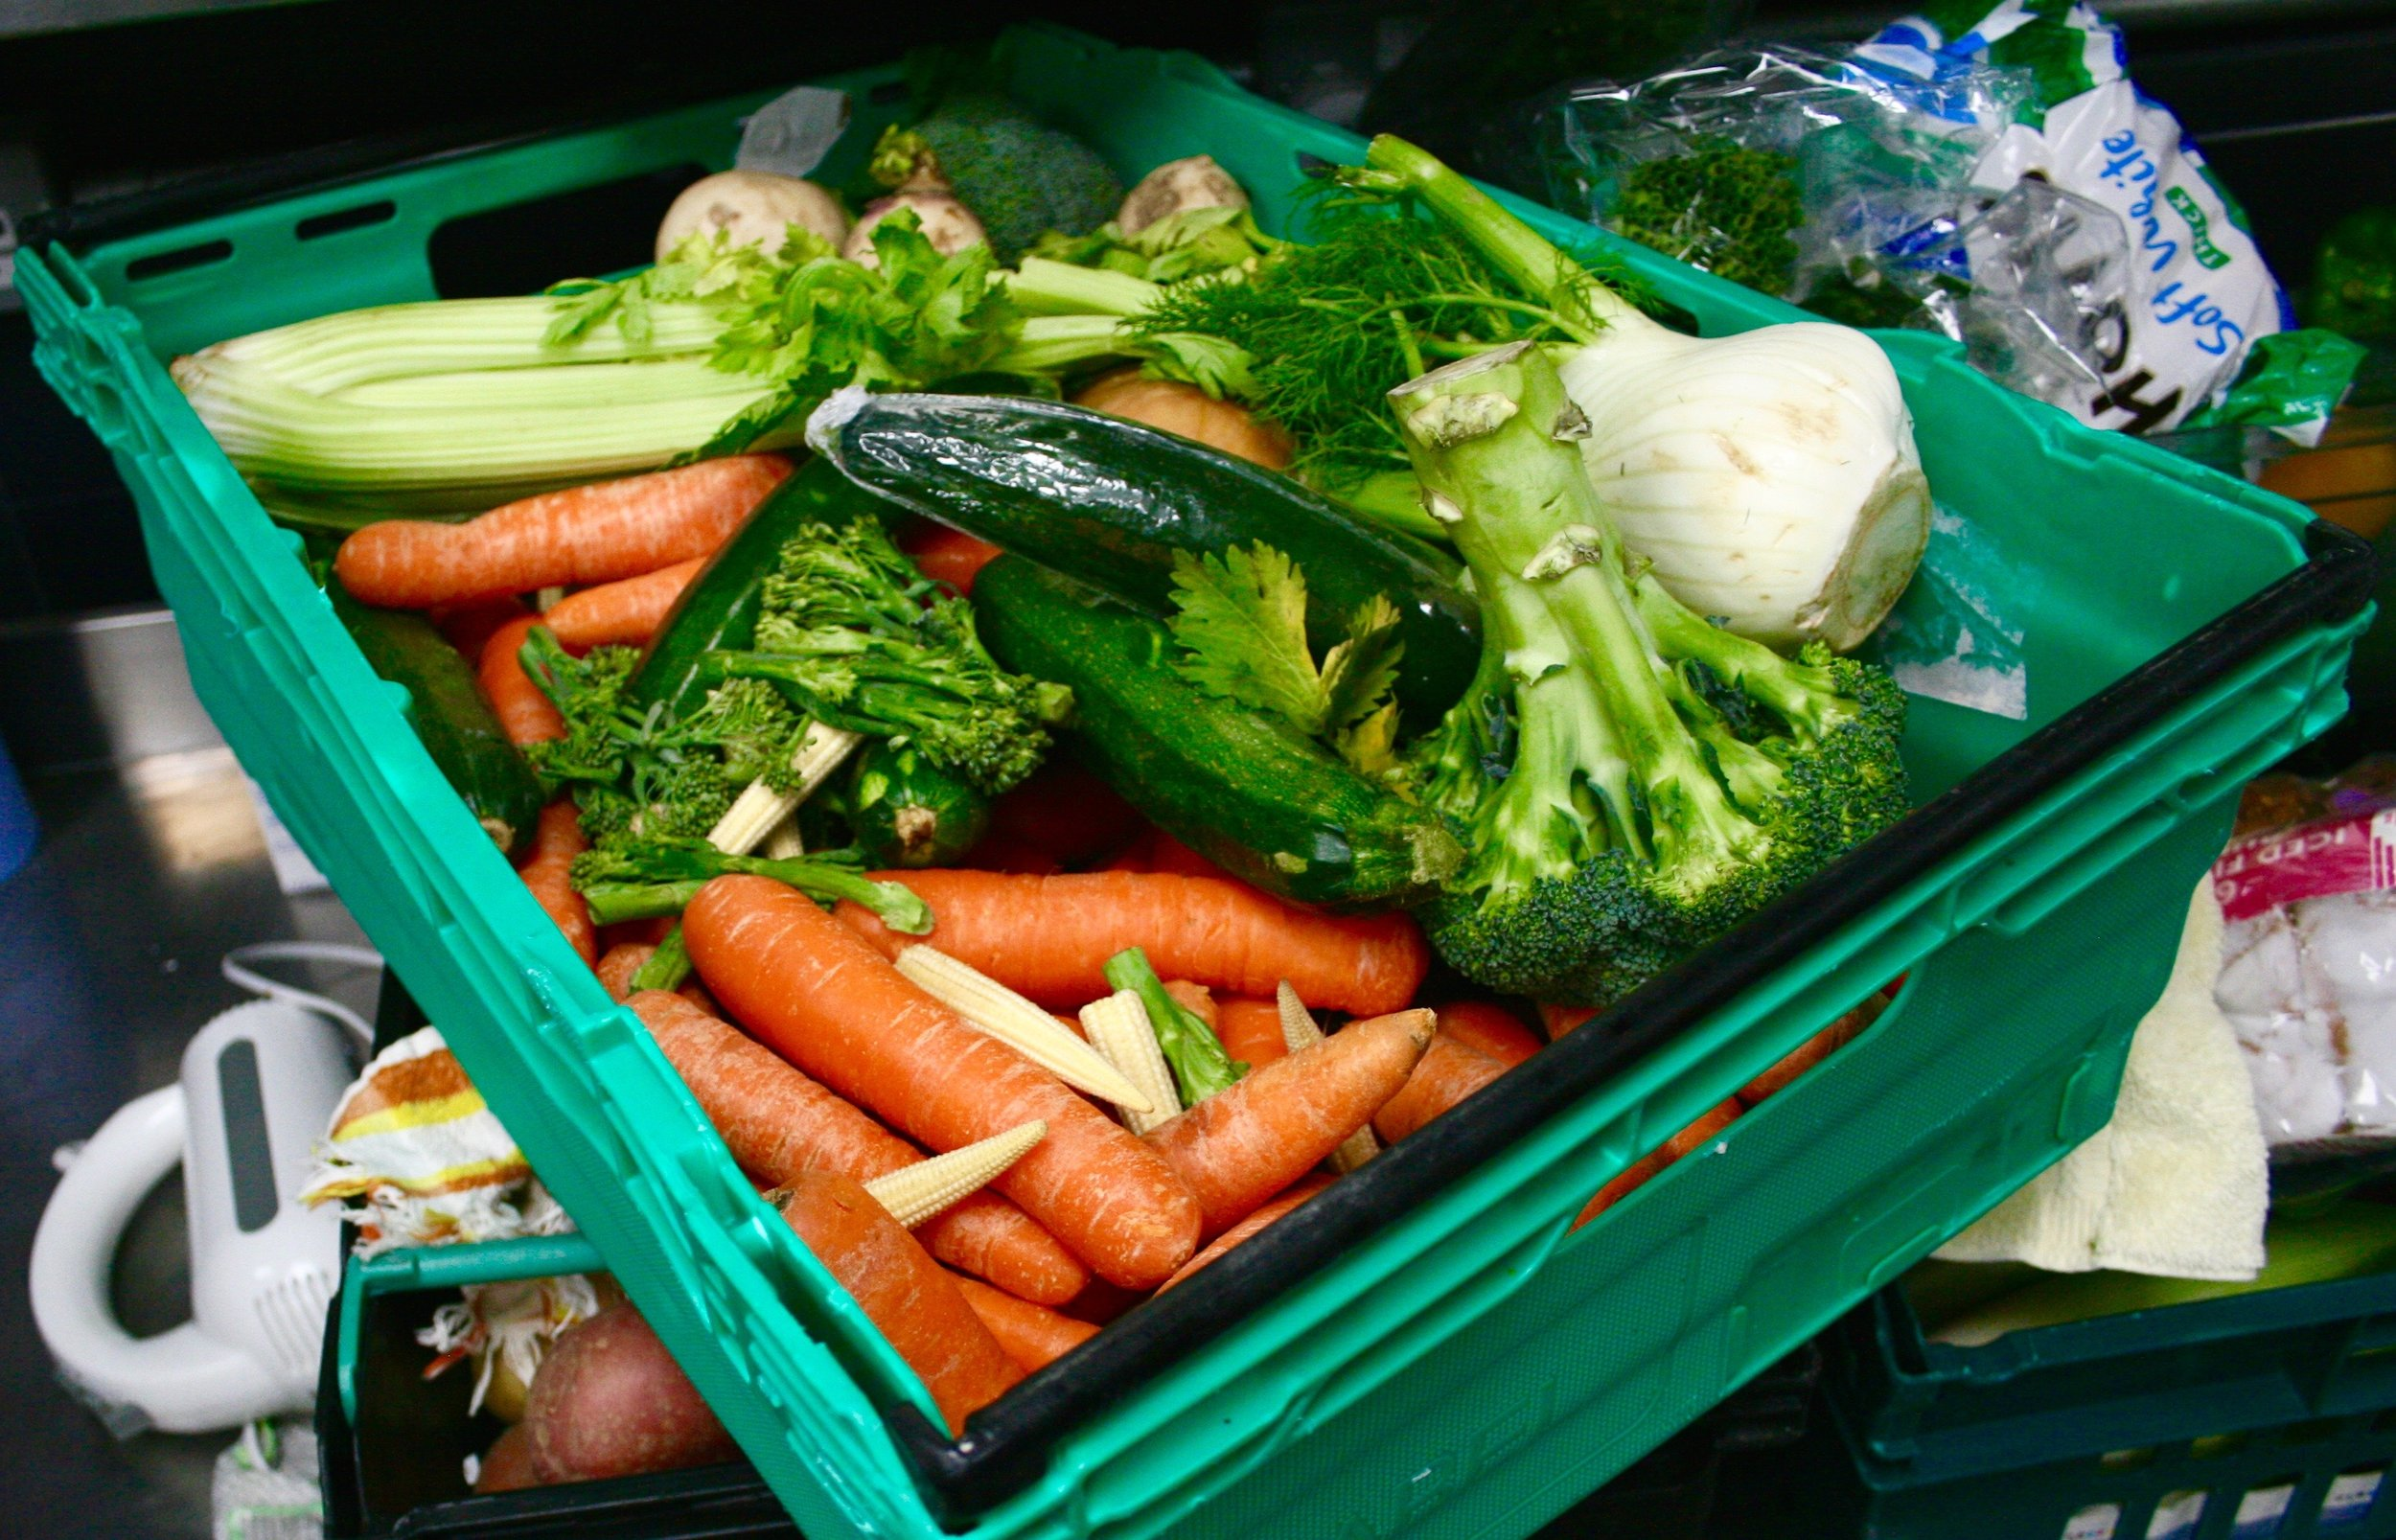 Basket of veg IMG_6583.jpg